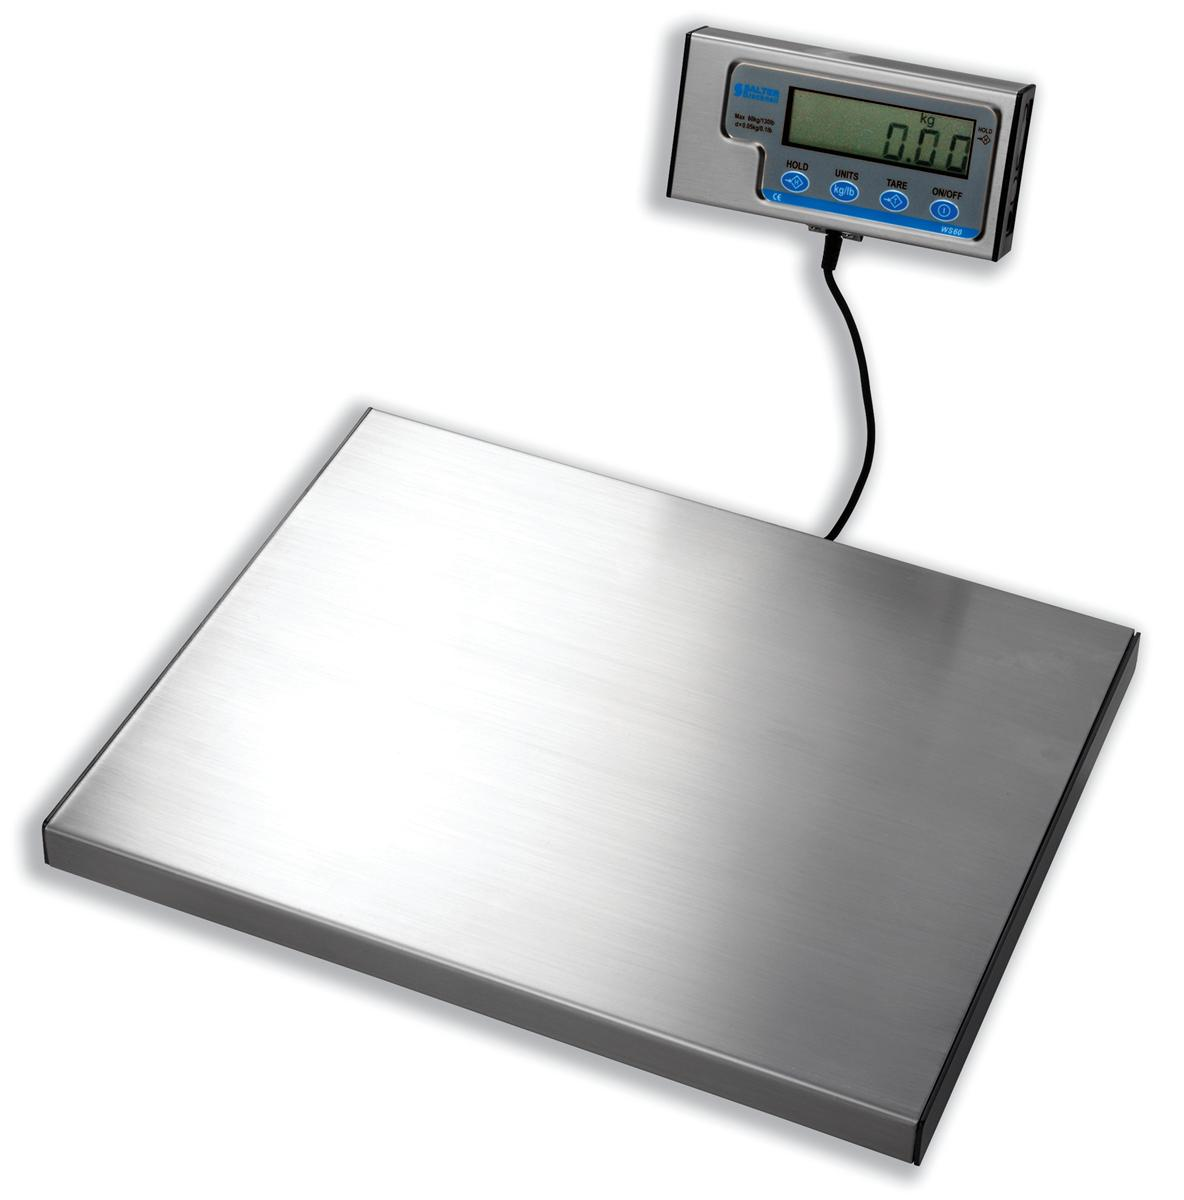 Salter WS Electronic Parcel Scale Portable with Detached LCD 20g Increments Capacity 60kg Ref WS60